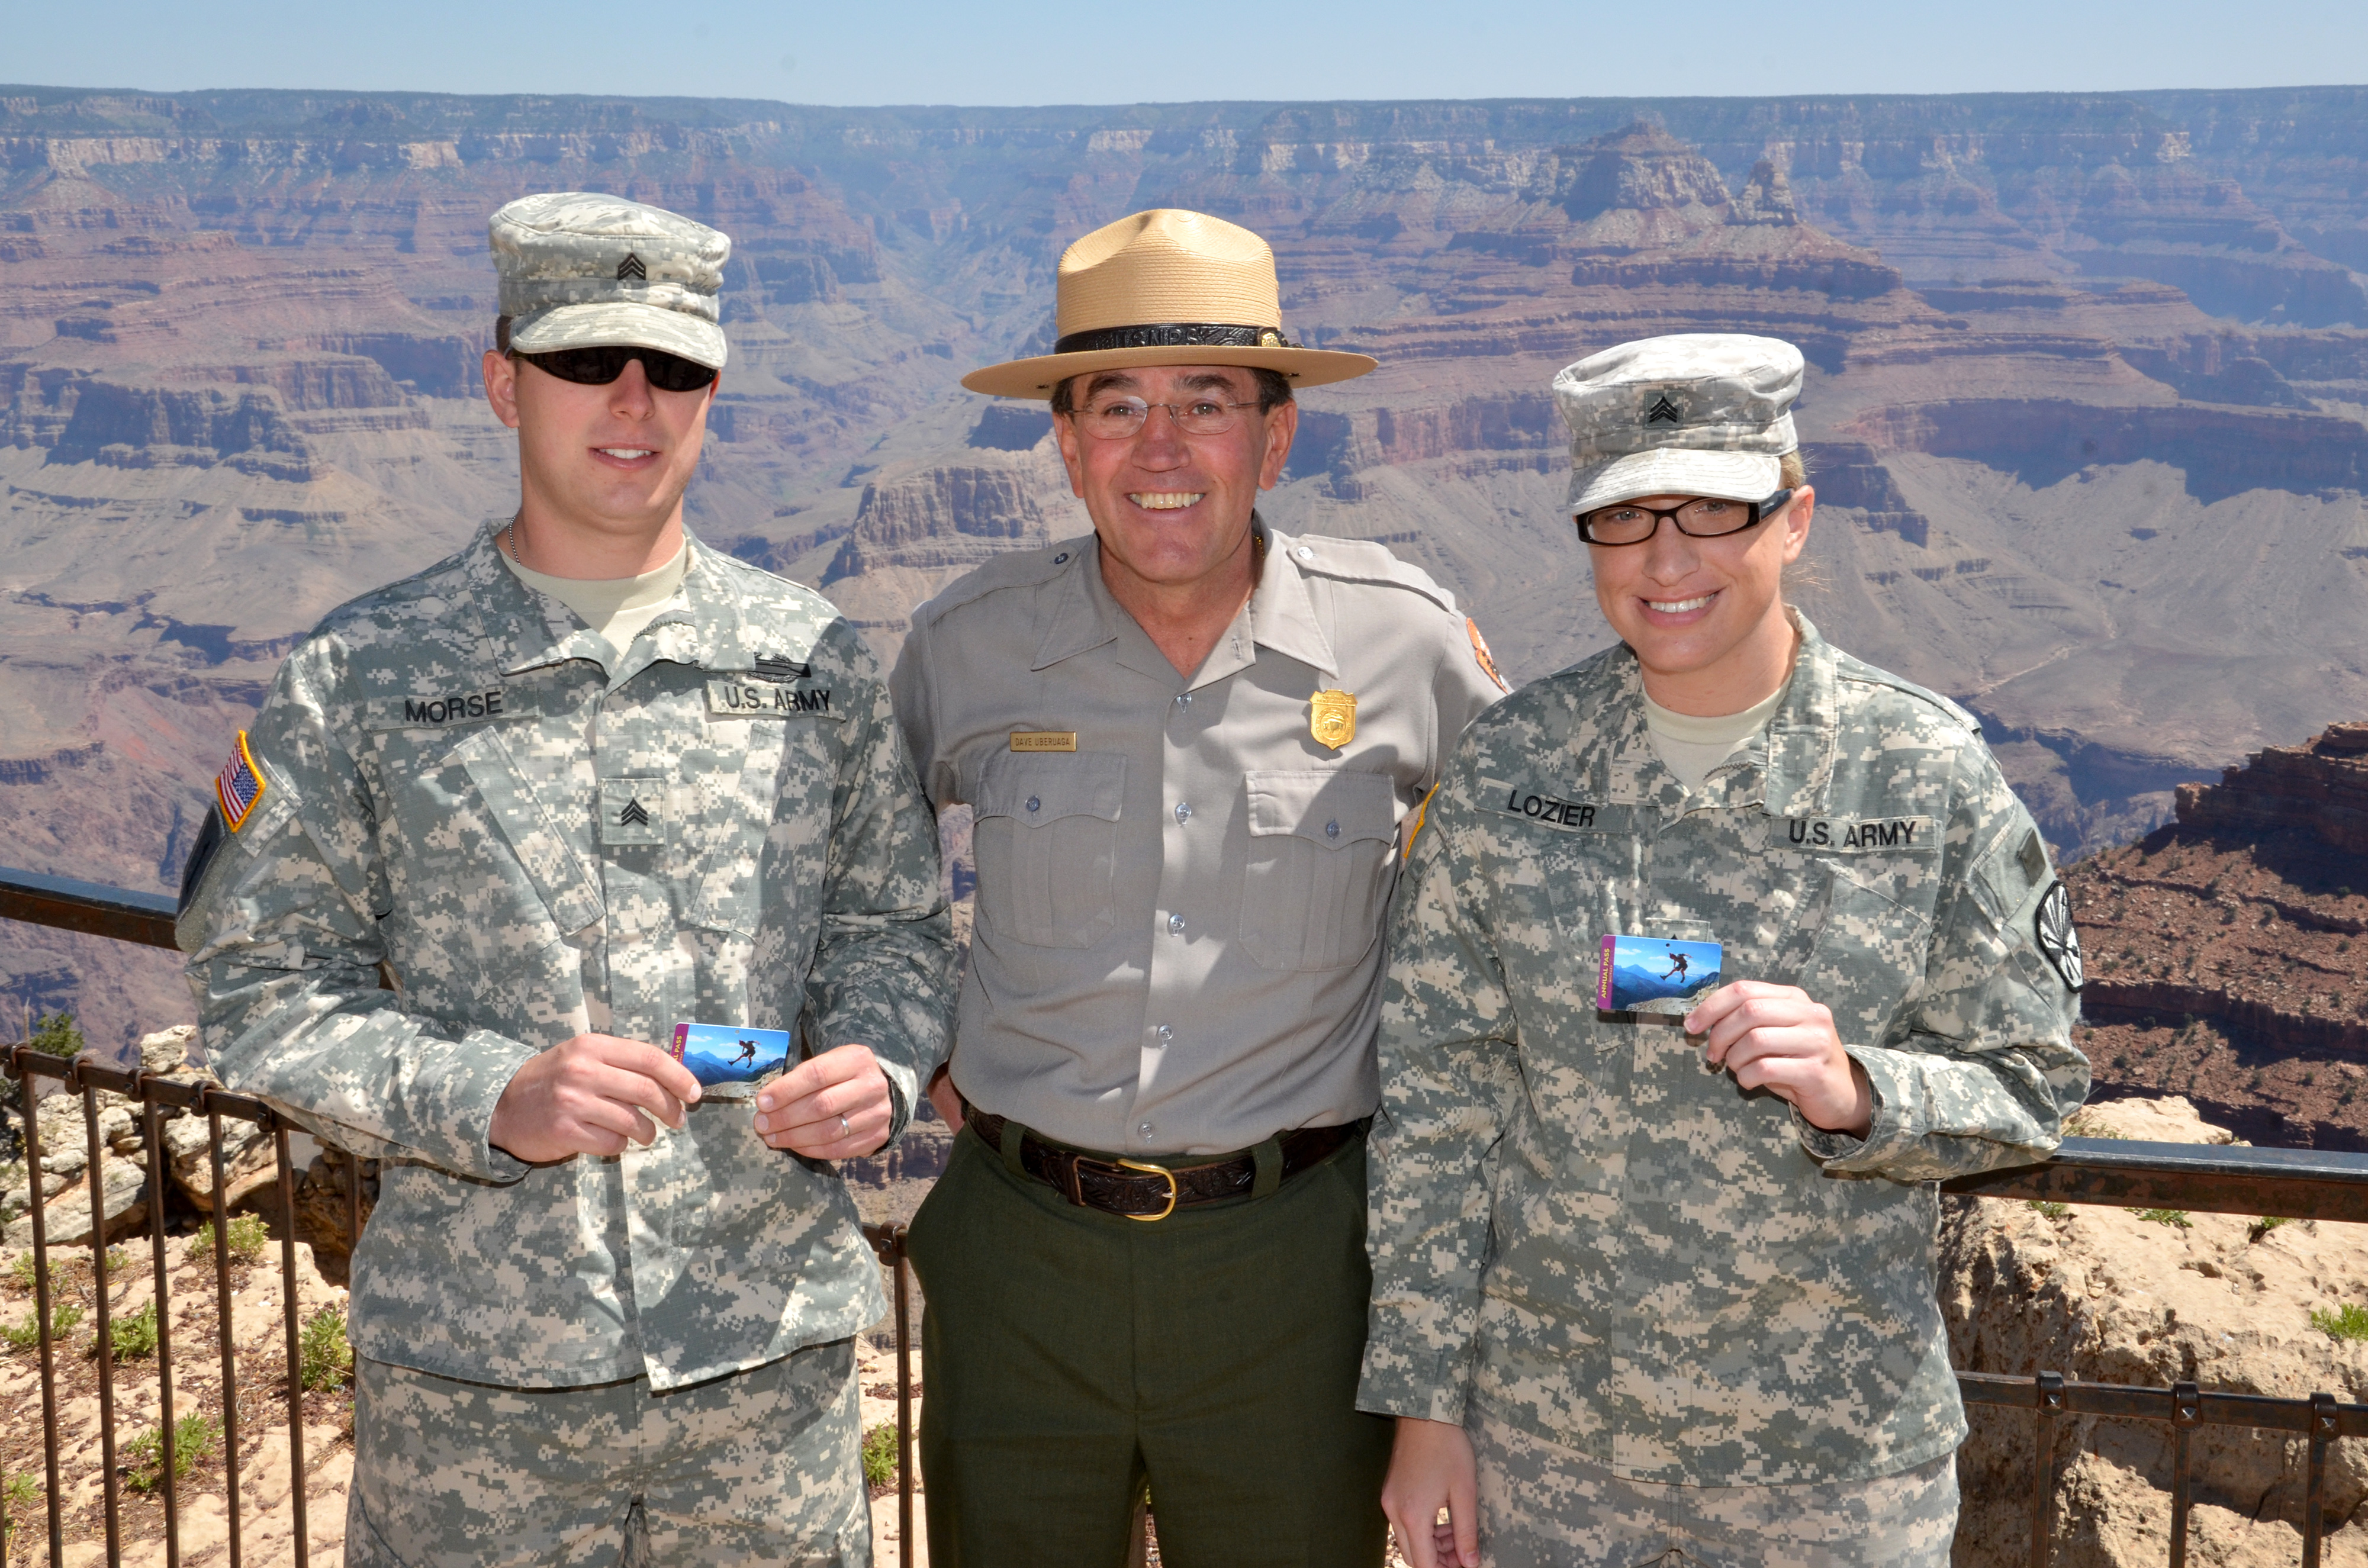 two military members and one ranger smiling at camera and holding up park passes at Grand Canyon National Park